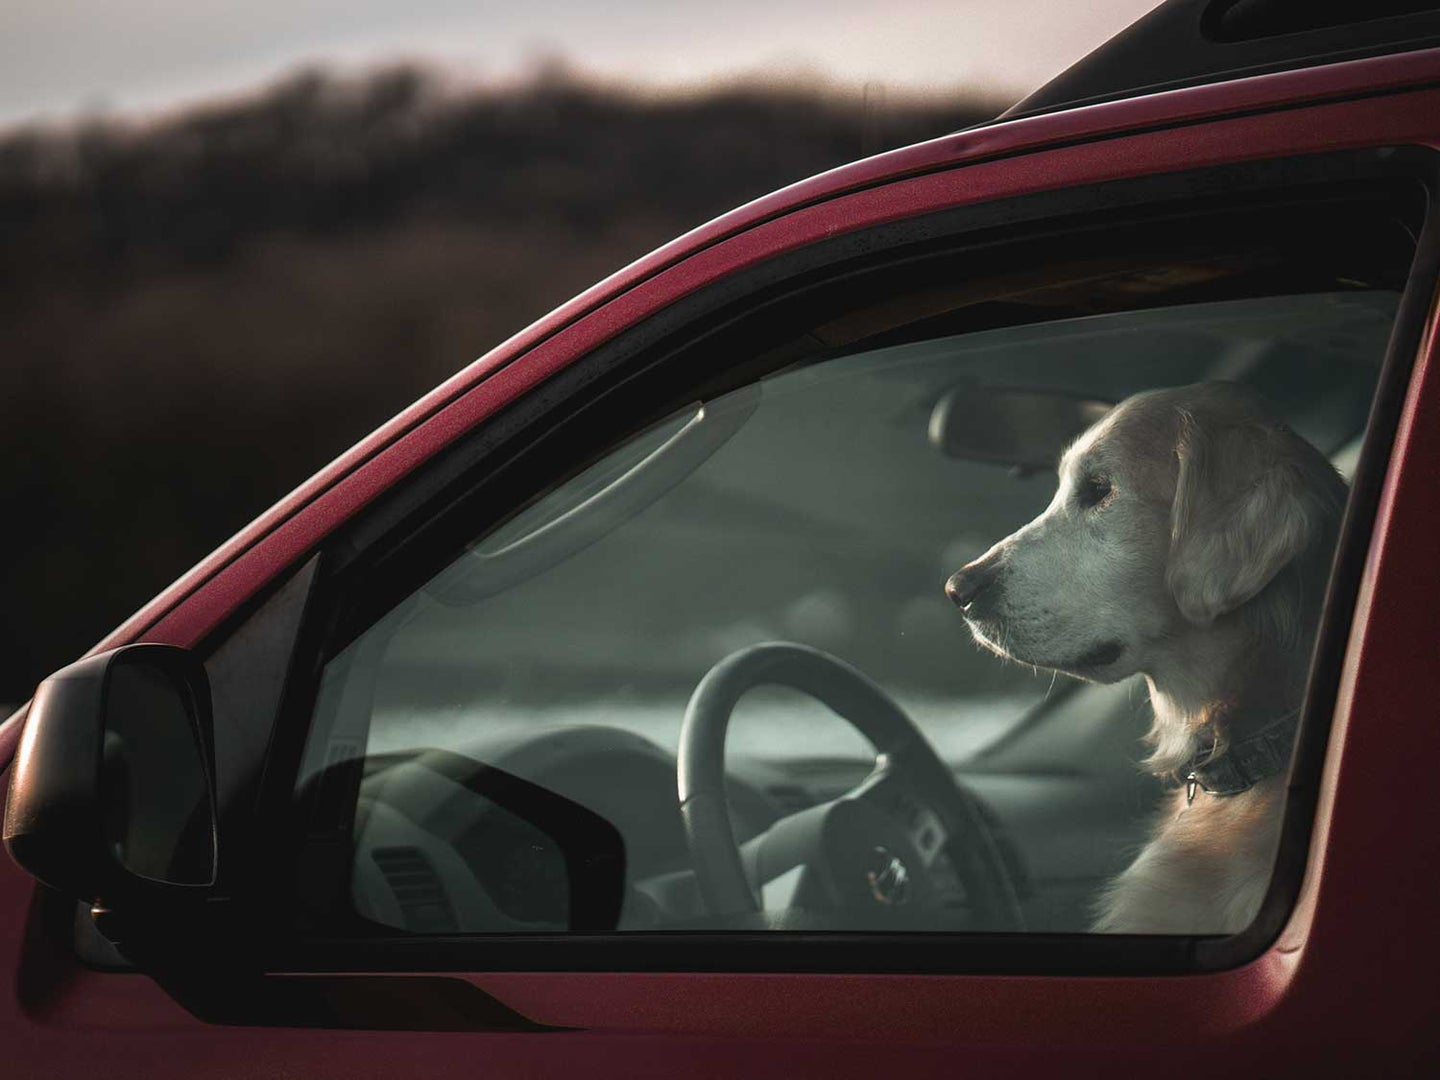 Dog in car sitting on dog seat cover.